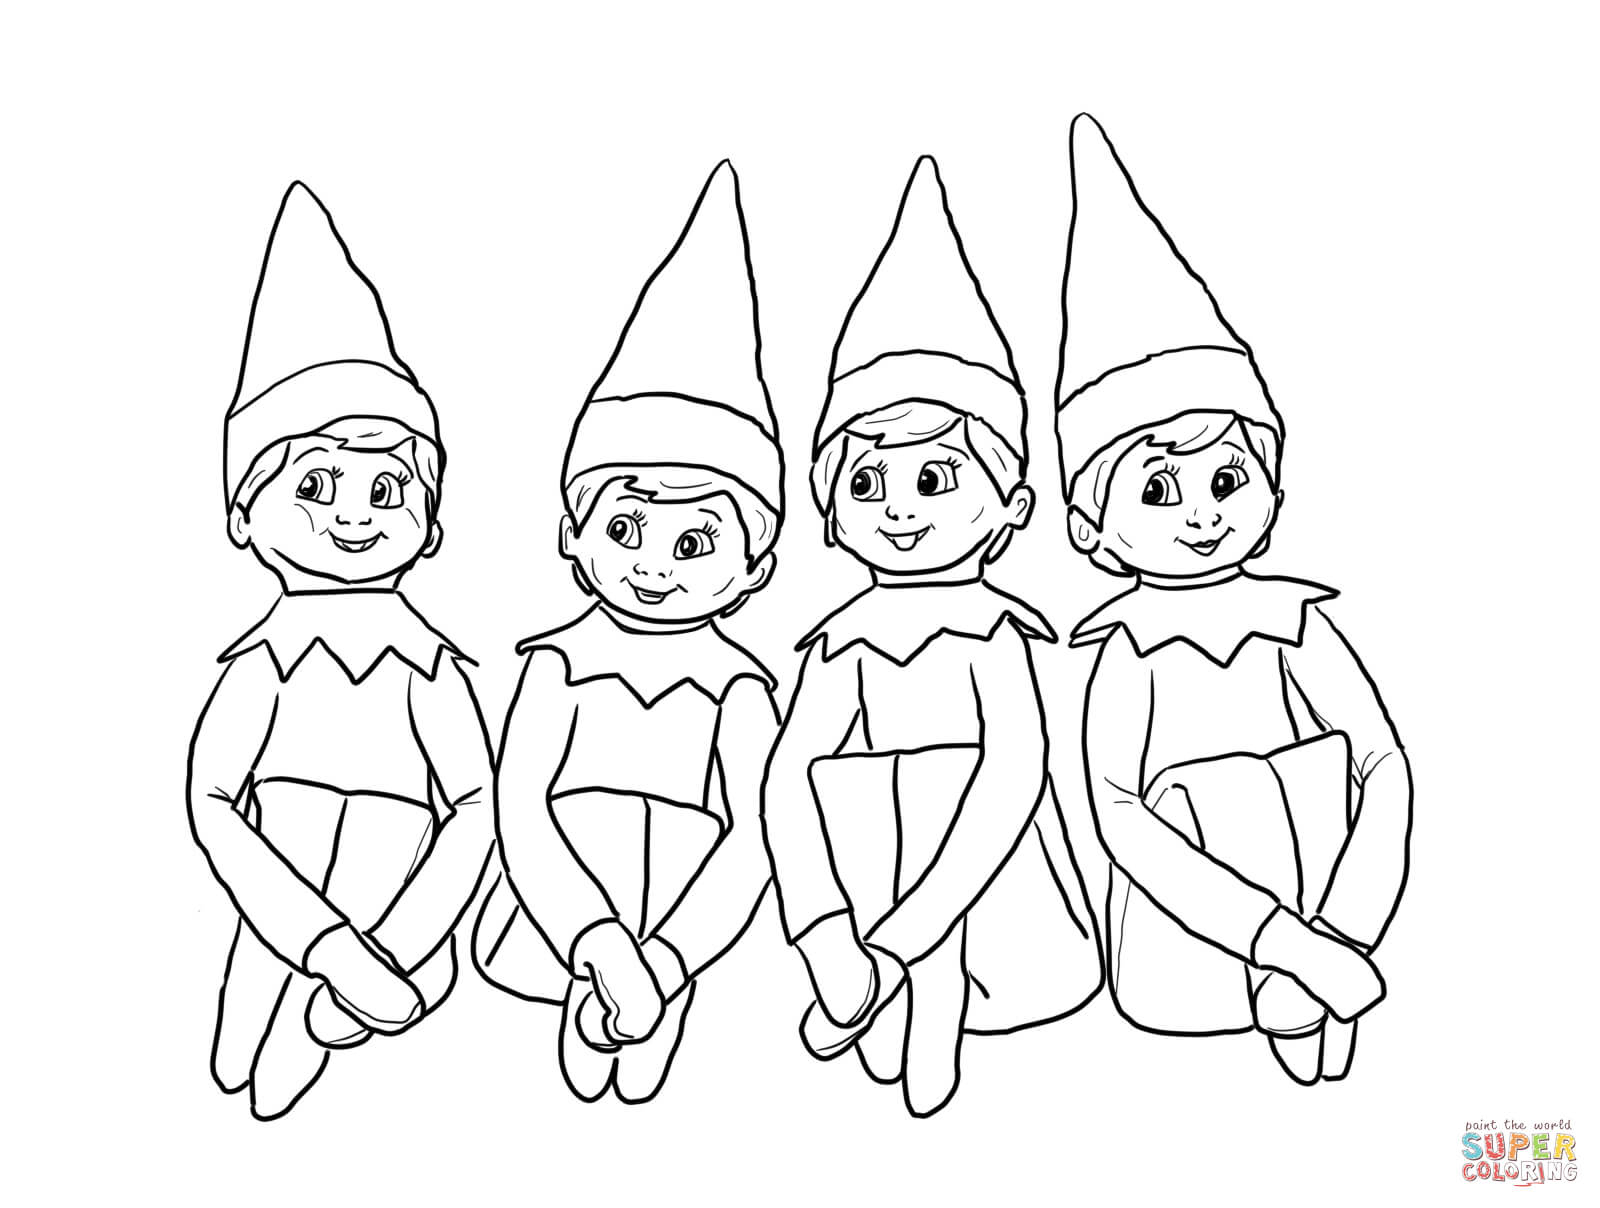 - 21+ Excellent Photo Of Elf On The Shelf Coloring Pages - Birijus.com